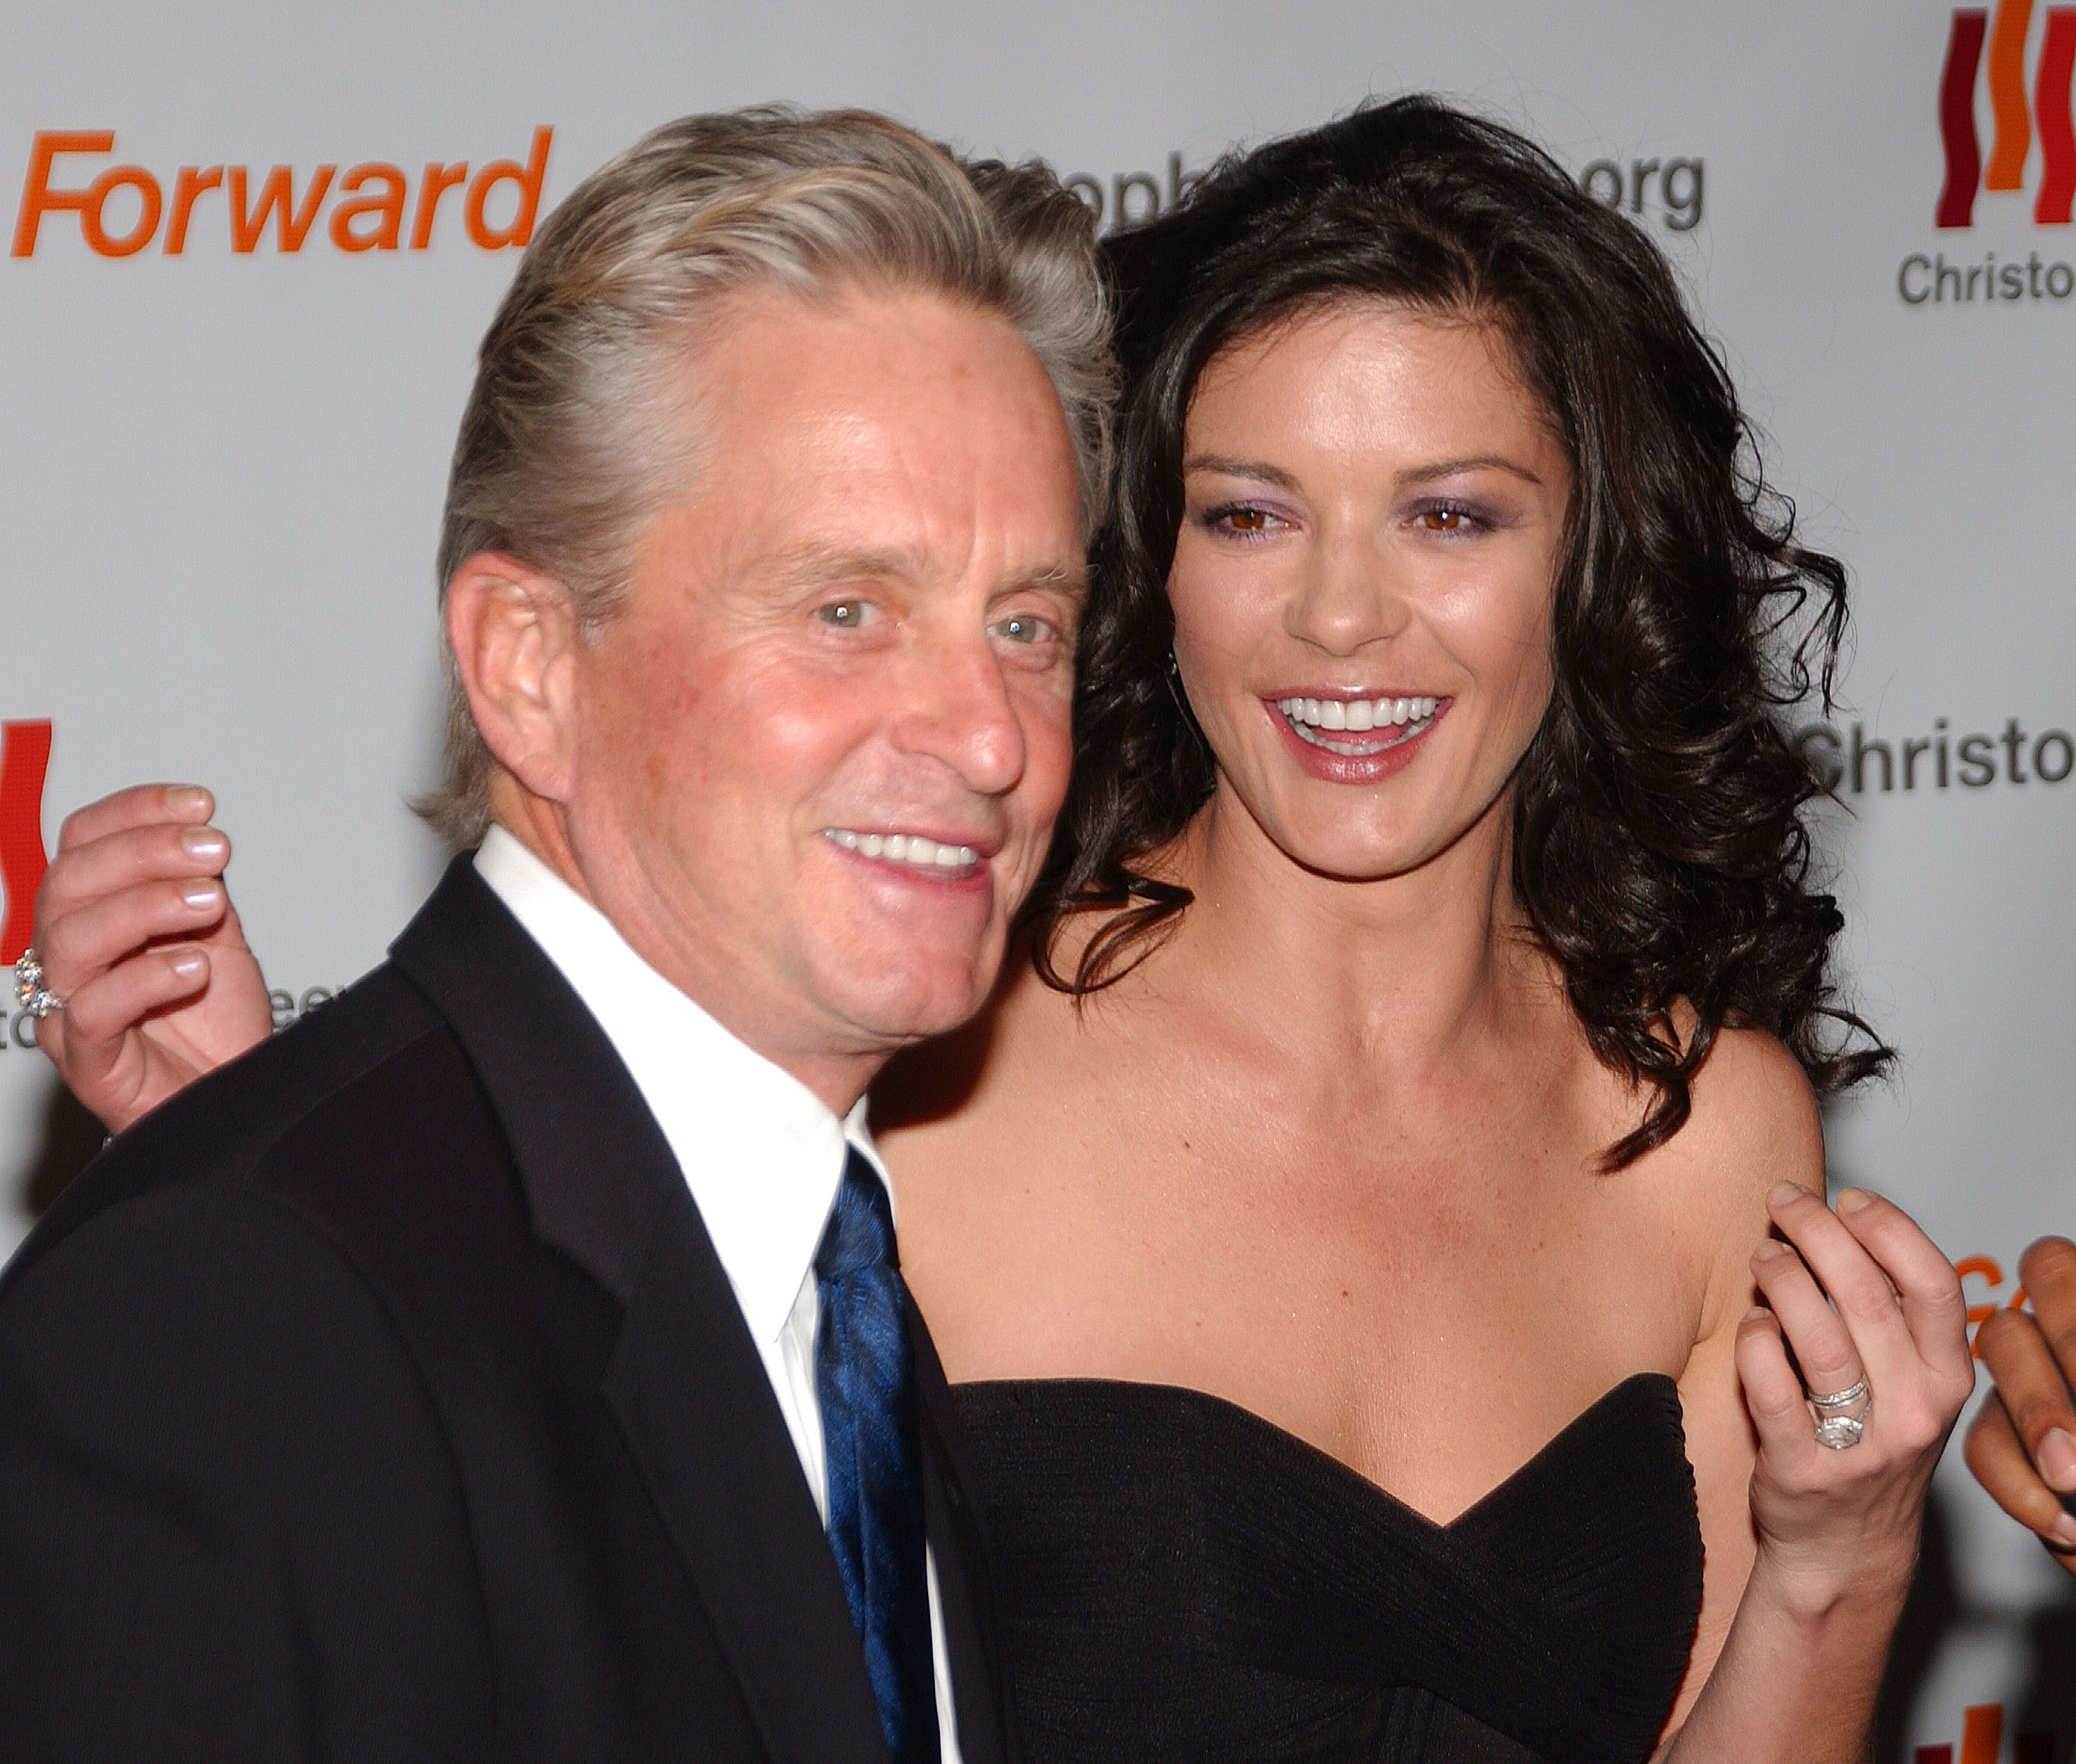 """Michael Douglas and Catherine Zeta-Jones during the Christopher Reeve Foundation's """"A Magical Evening"""" at the Marriott Marquis Hotel November 17, 2005 